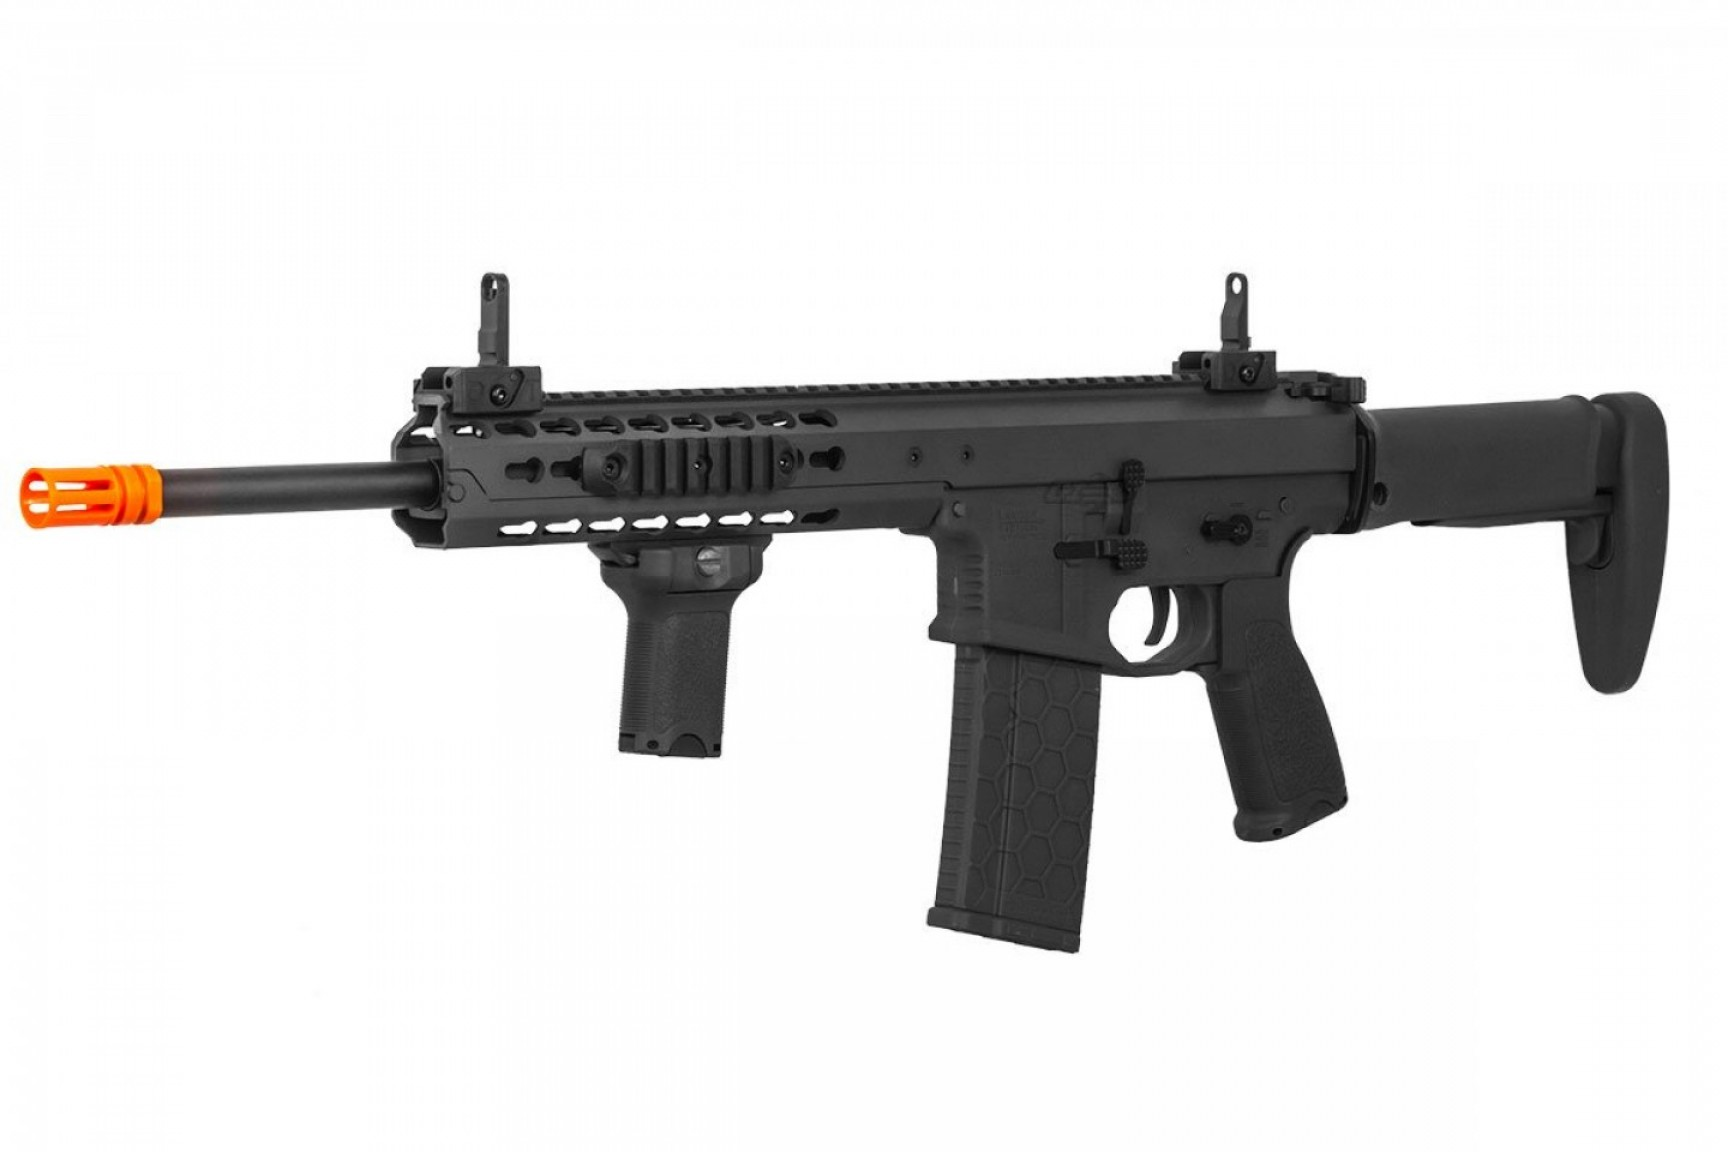 KWA KRISS Vector Parts: Lancer Tactical Lt Ba Gen Warlord Series Carbine Aeg Airsoft Rifle Black